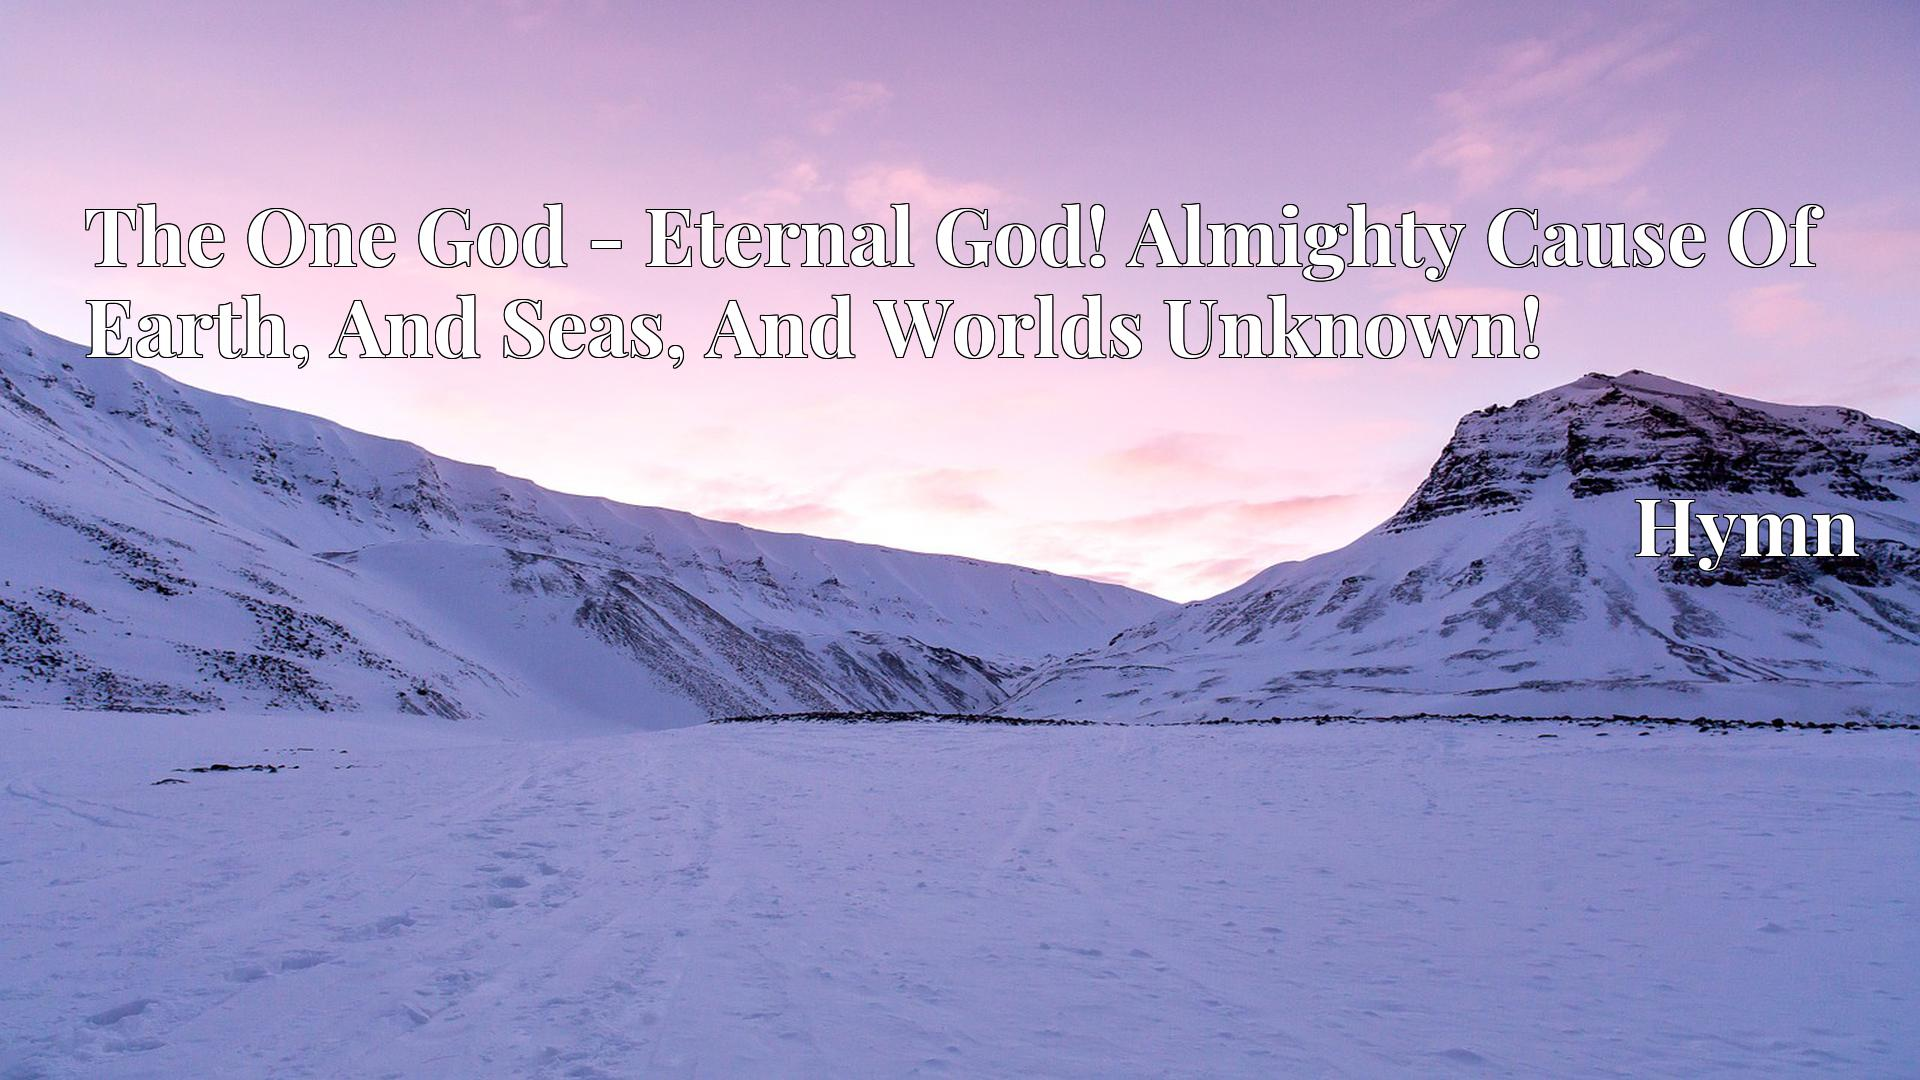 The One God - Eternal God! Almighty Cause Of Earth, And Seas, And Worlds Unknown! - Hymn